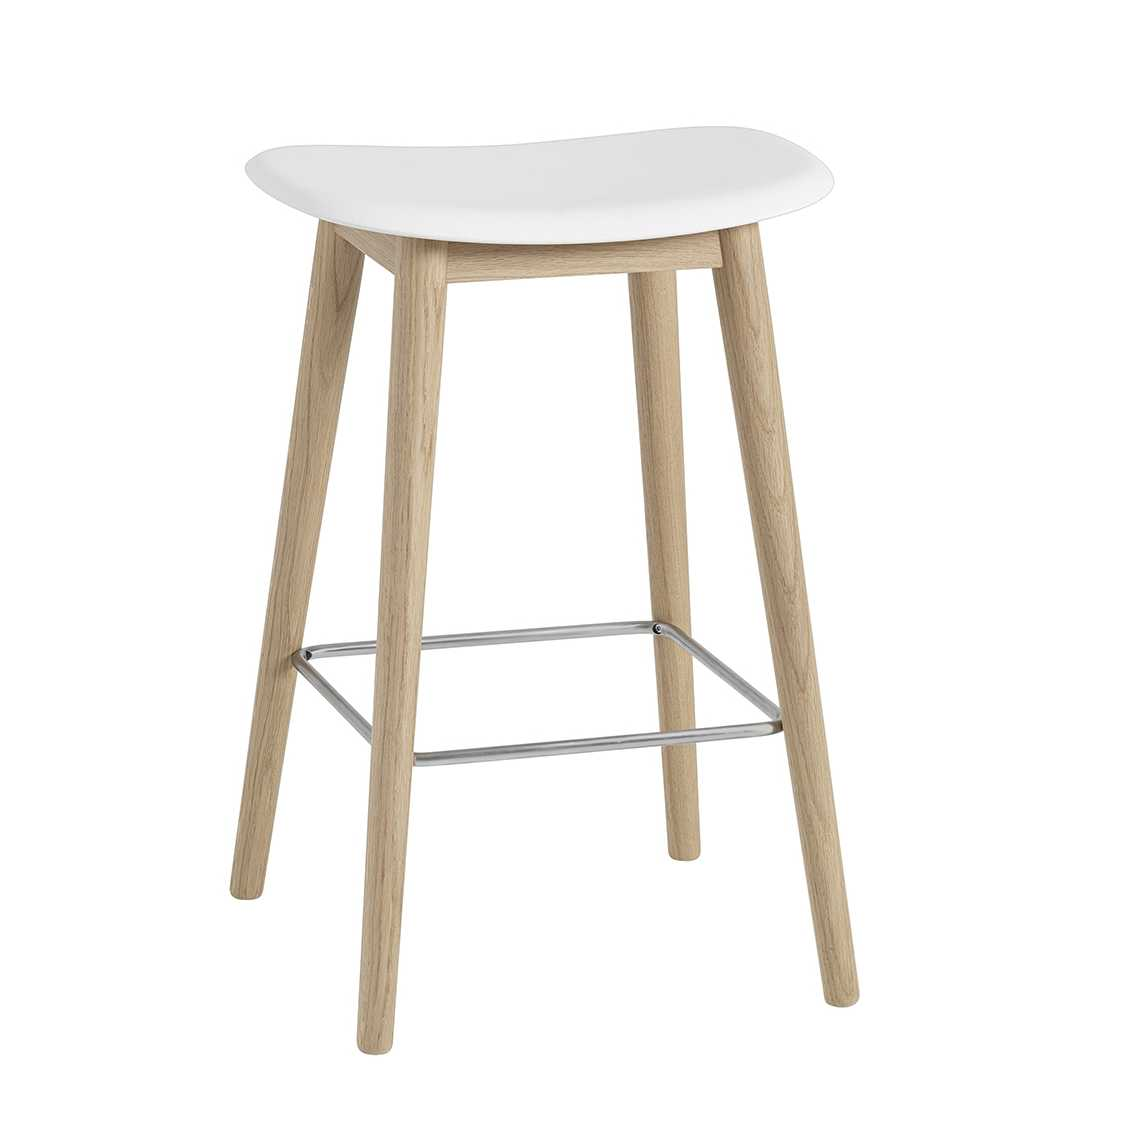 Swell Muuto Meubels Fiber Bar Stool H65 Wood Base Barkruk Gmtry Best Dining Table And Chair Ideas Images Gmtryco